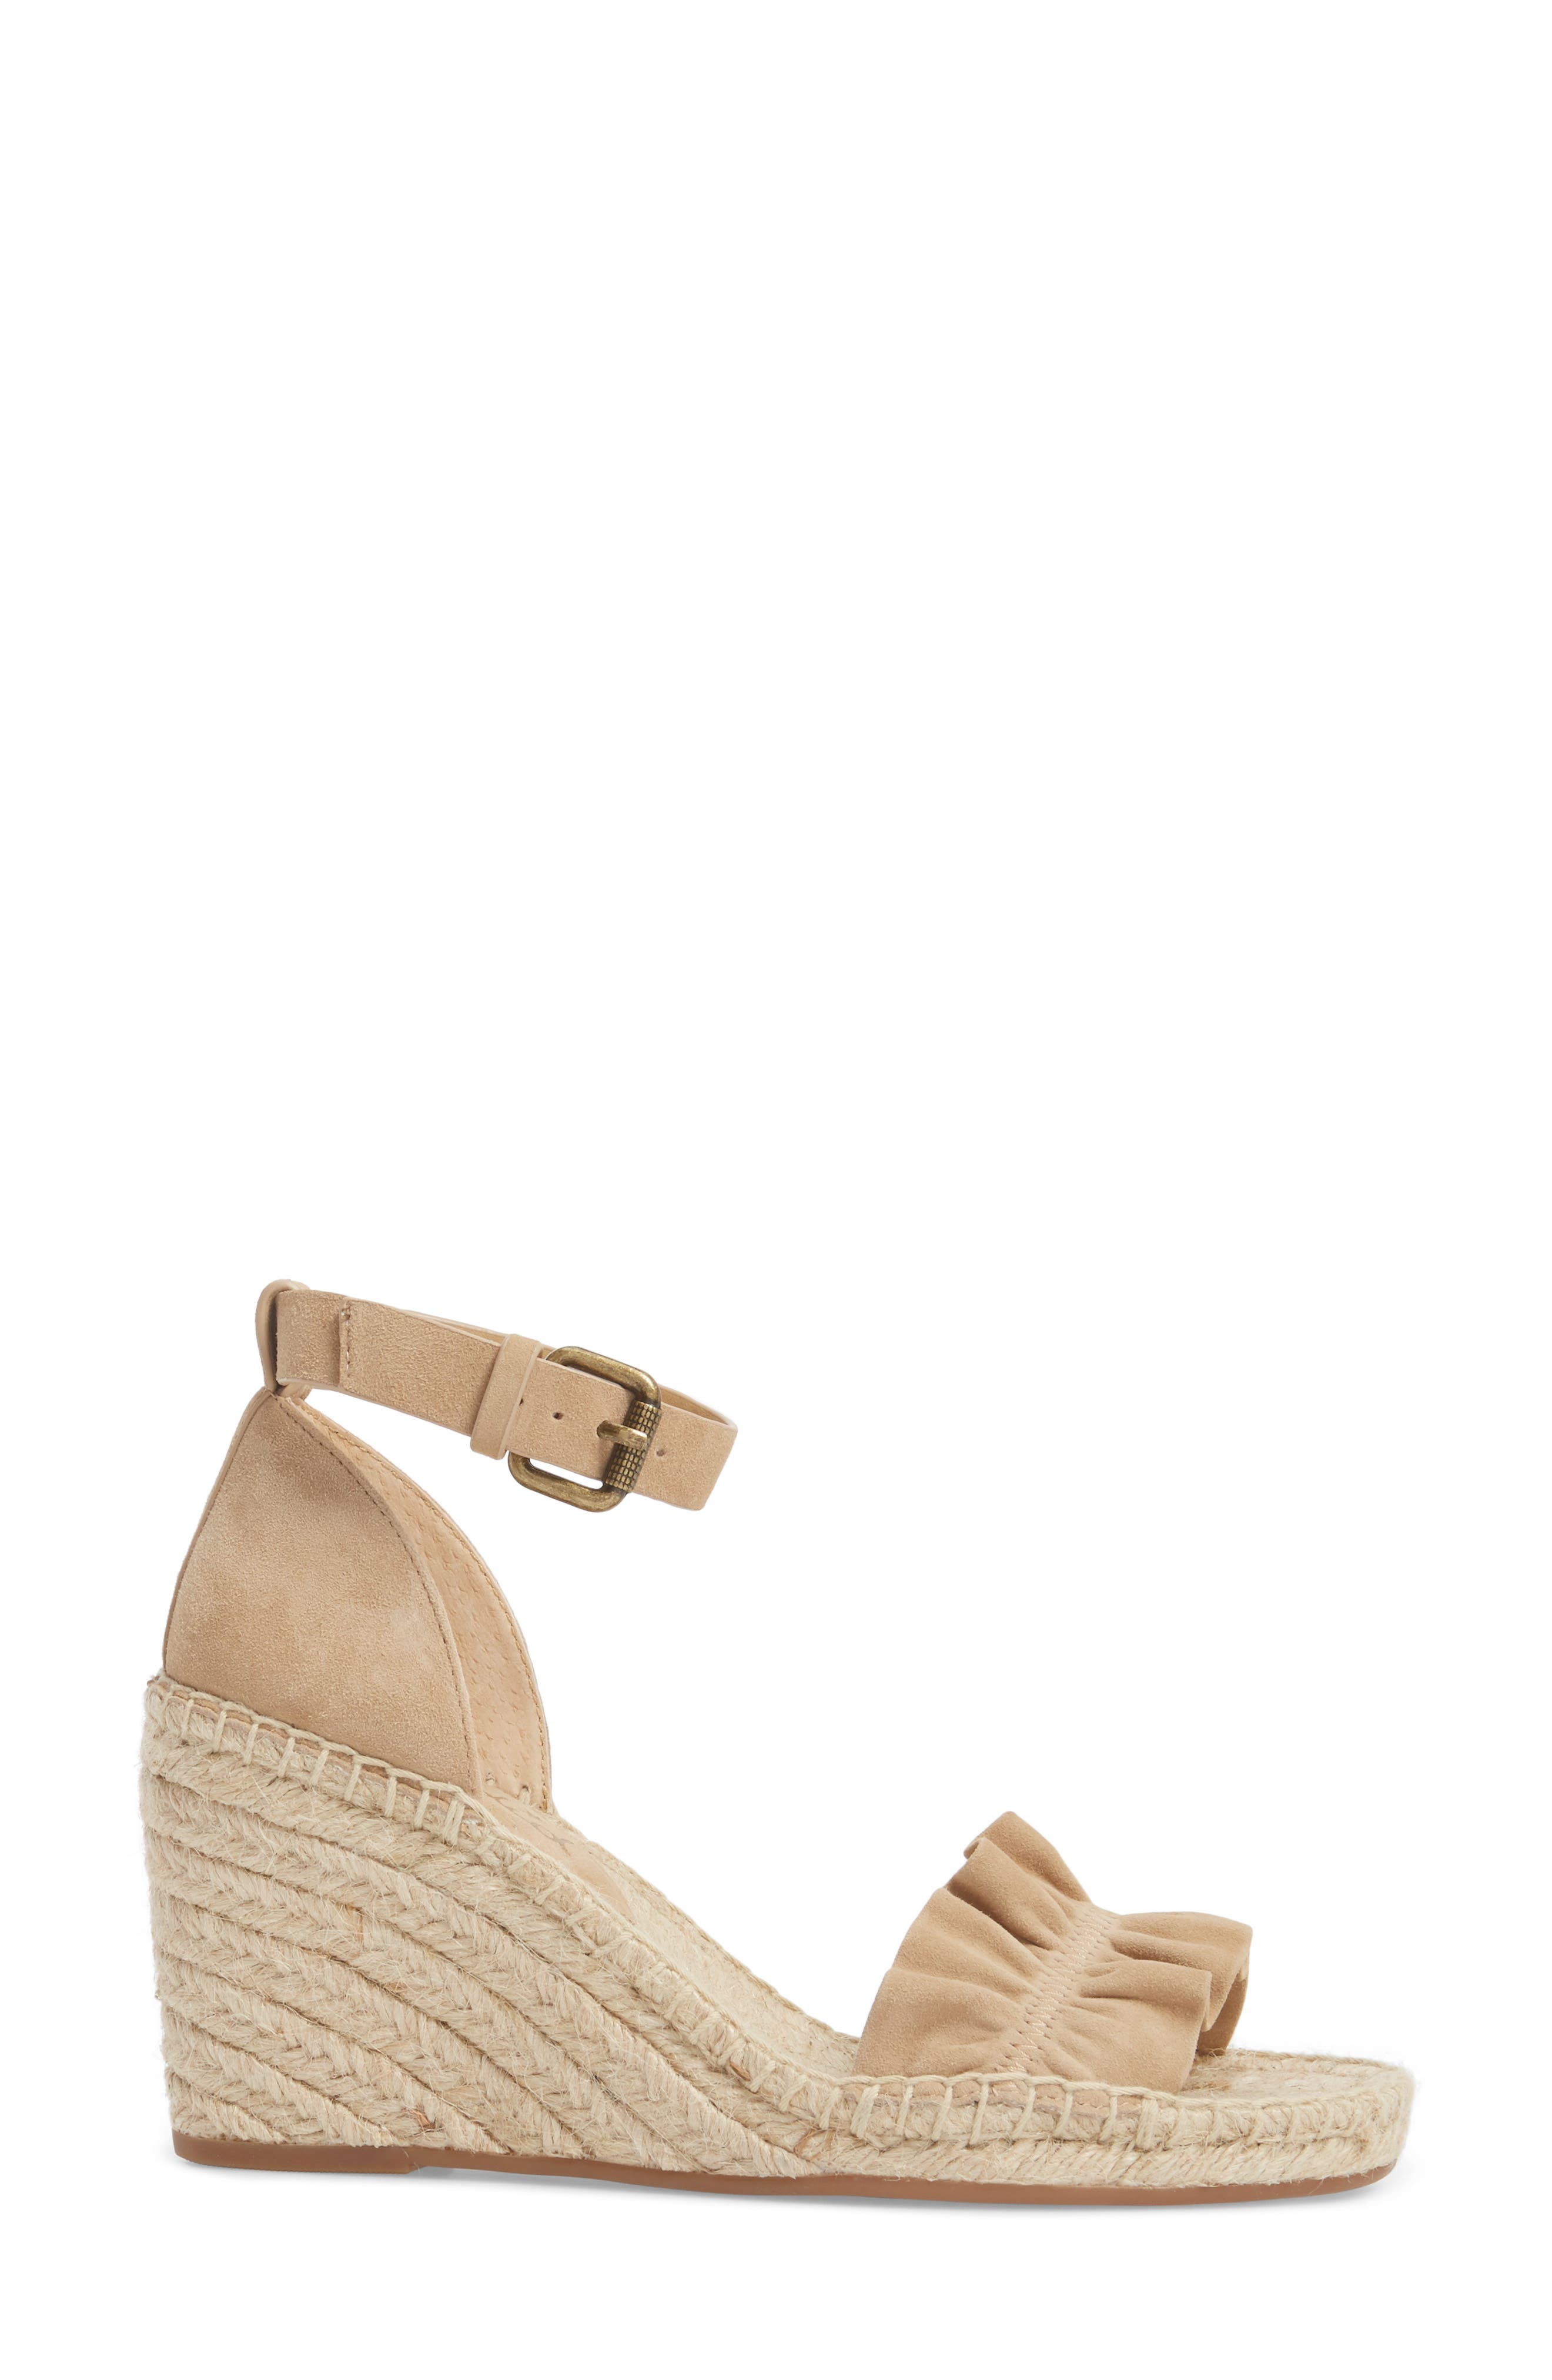 Bedford Espadrille Wedge Sandal,                             Alternate thumbnail 3, color,                             021